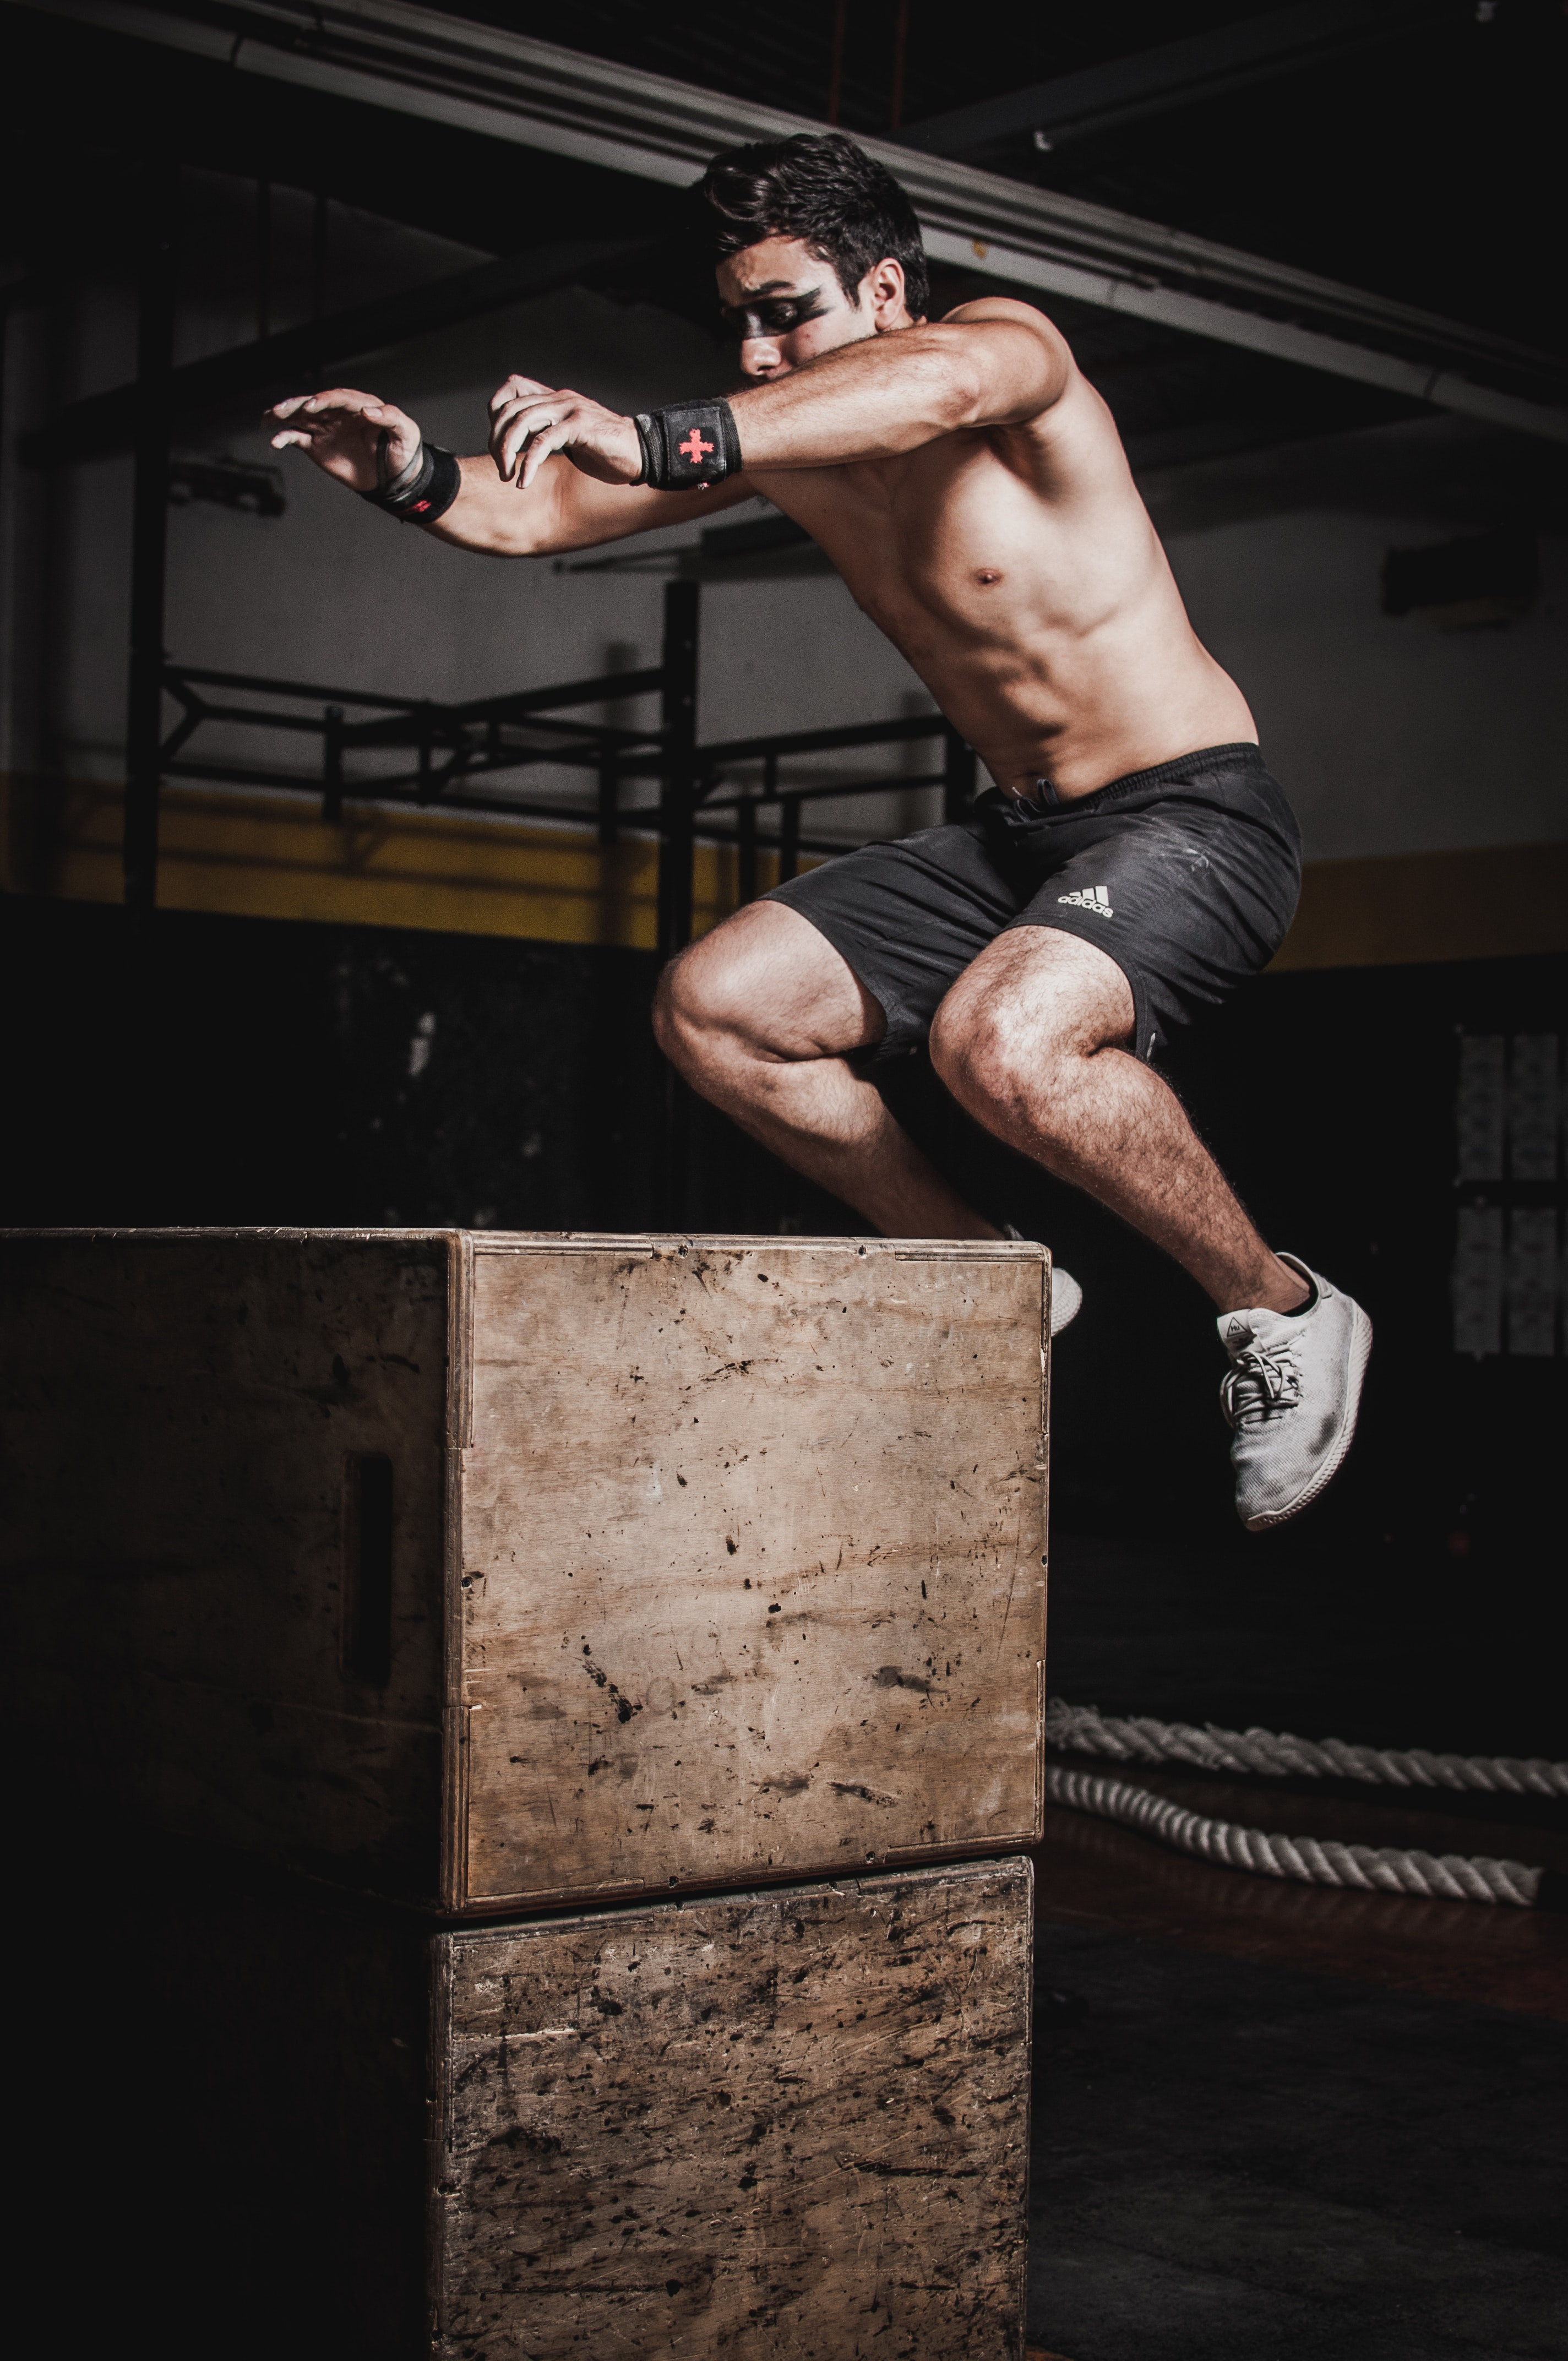 An in-depth review of the best plyo boxes available in 2019.